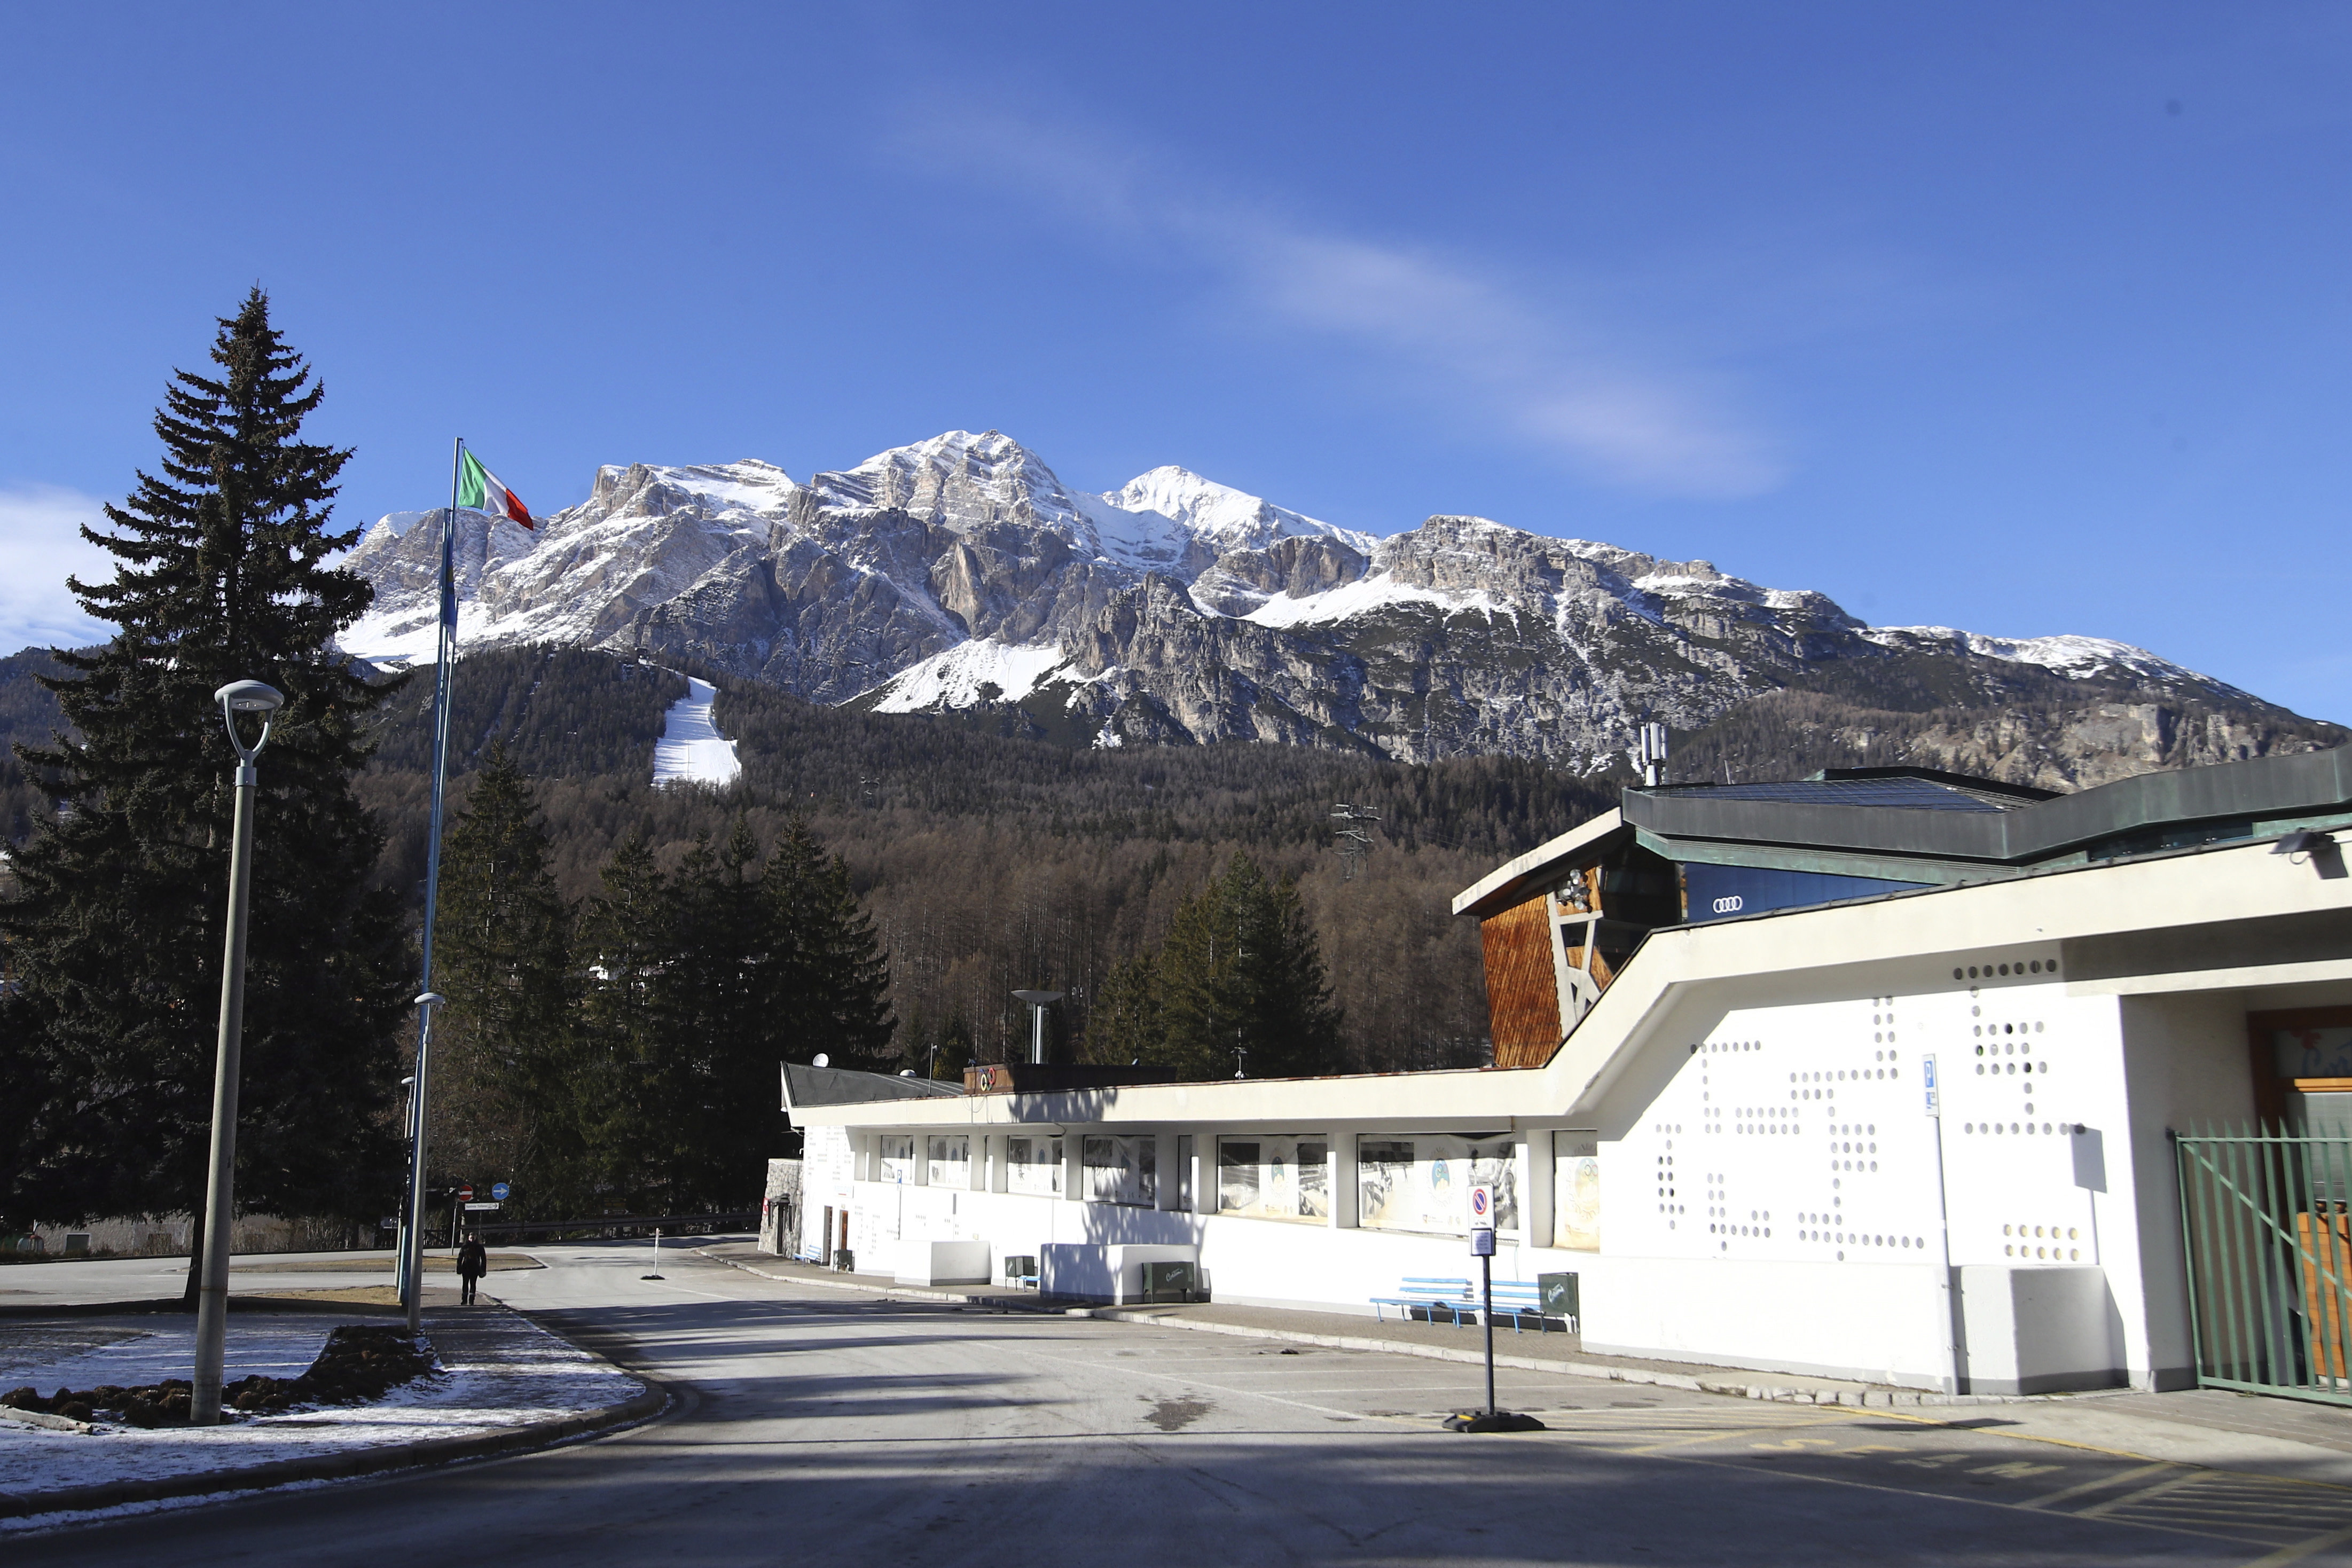 picture of building with snow covered mountain behind